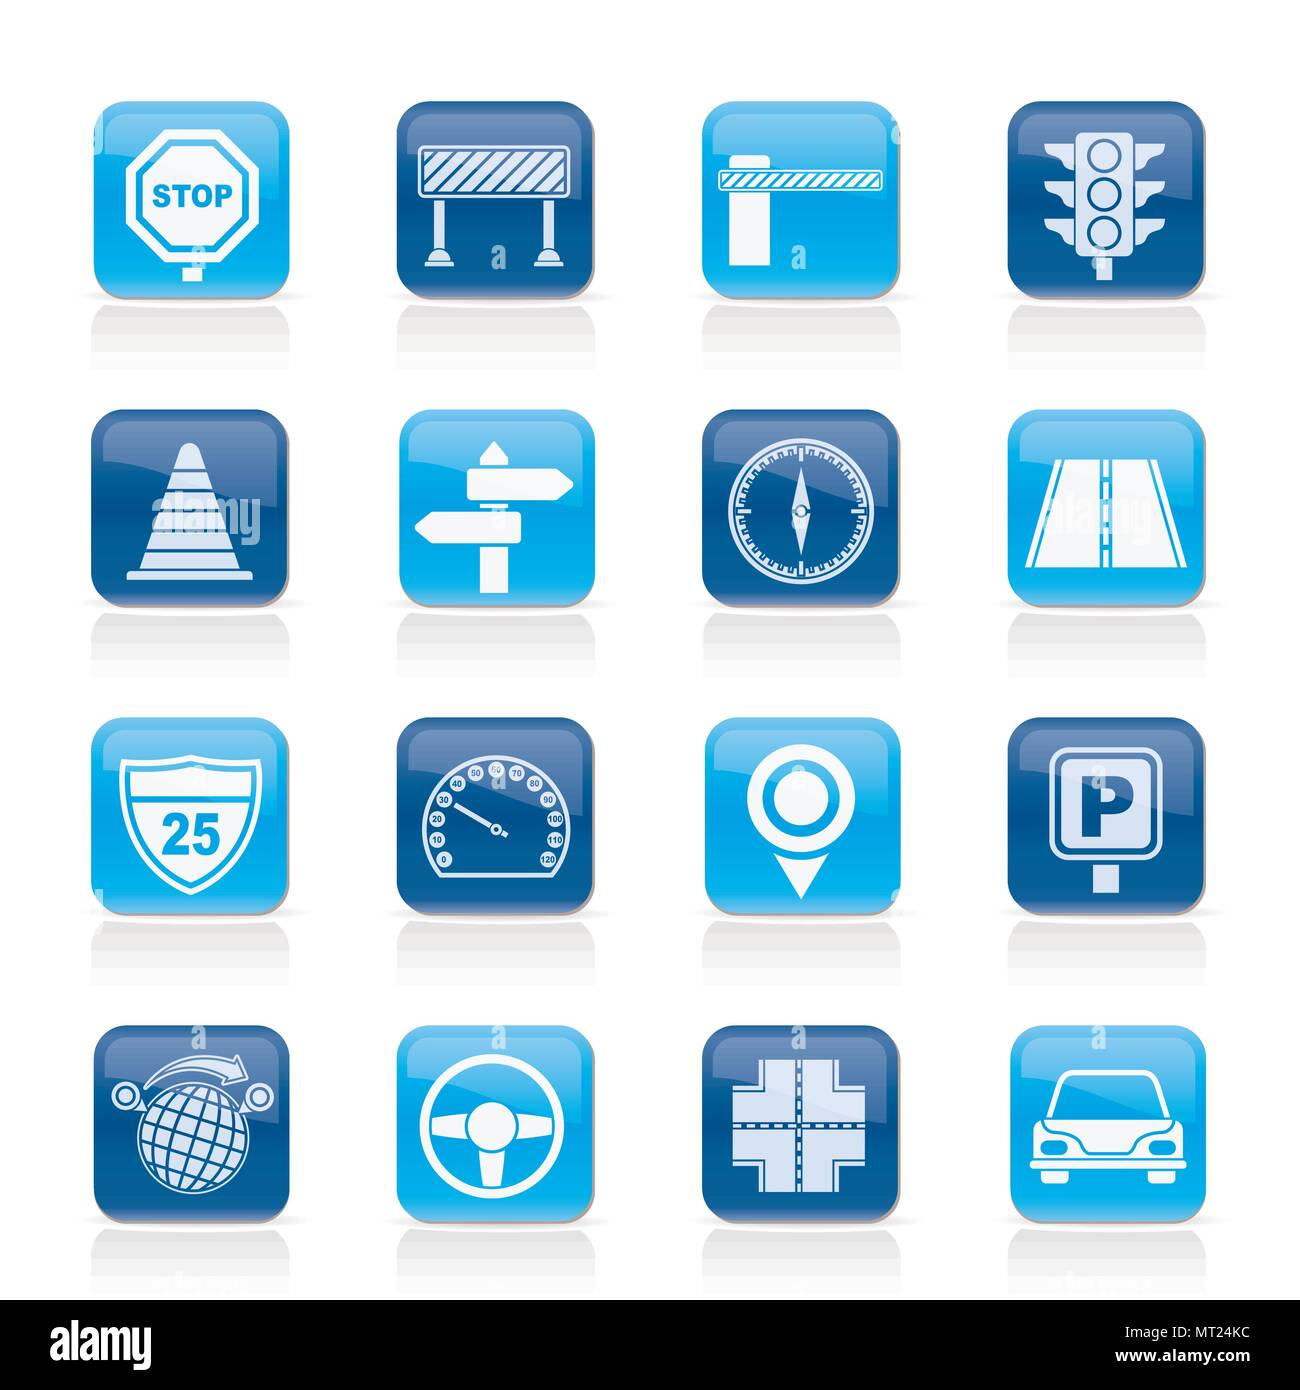 Road and Traffic Icons - vector icon set - Stock Vector